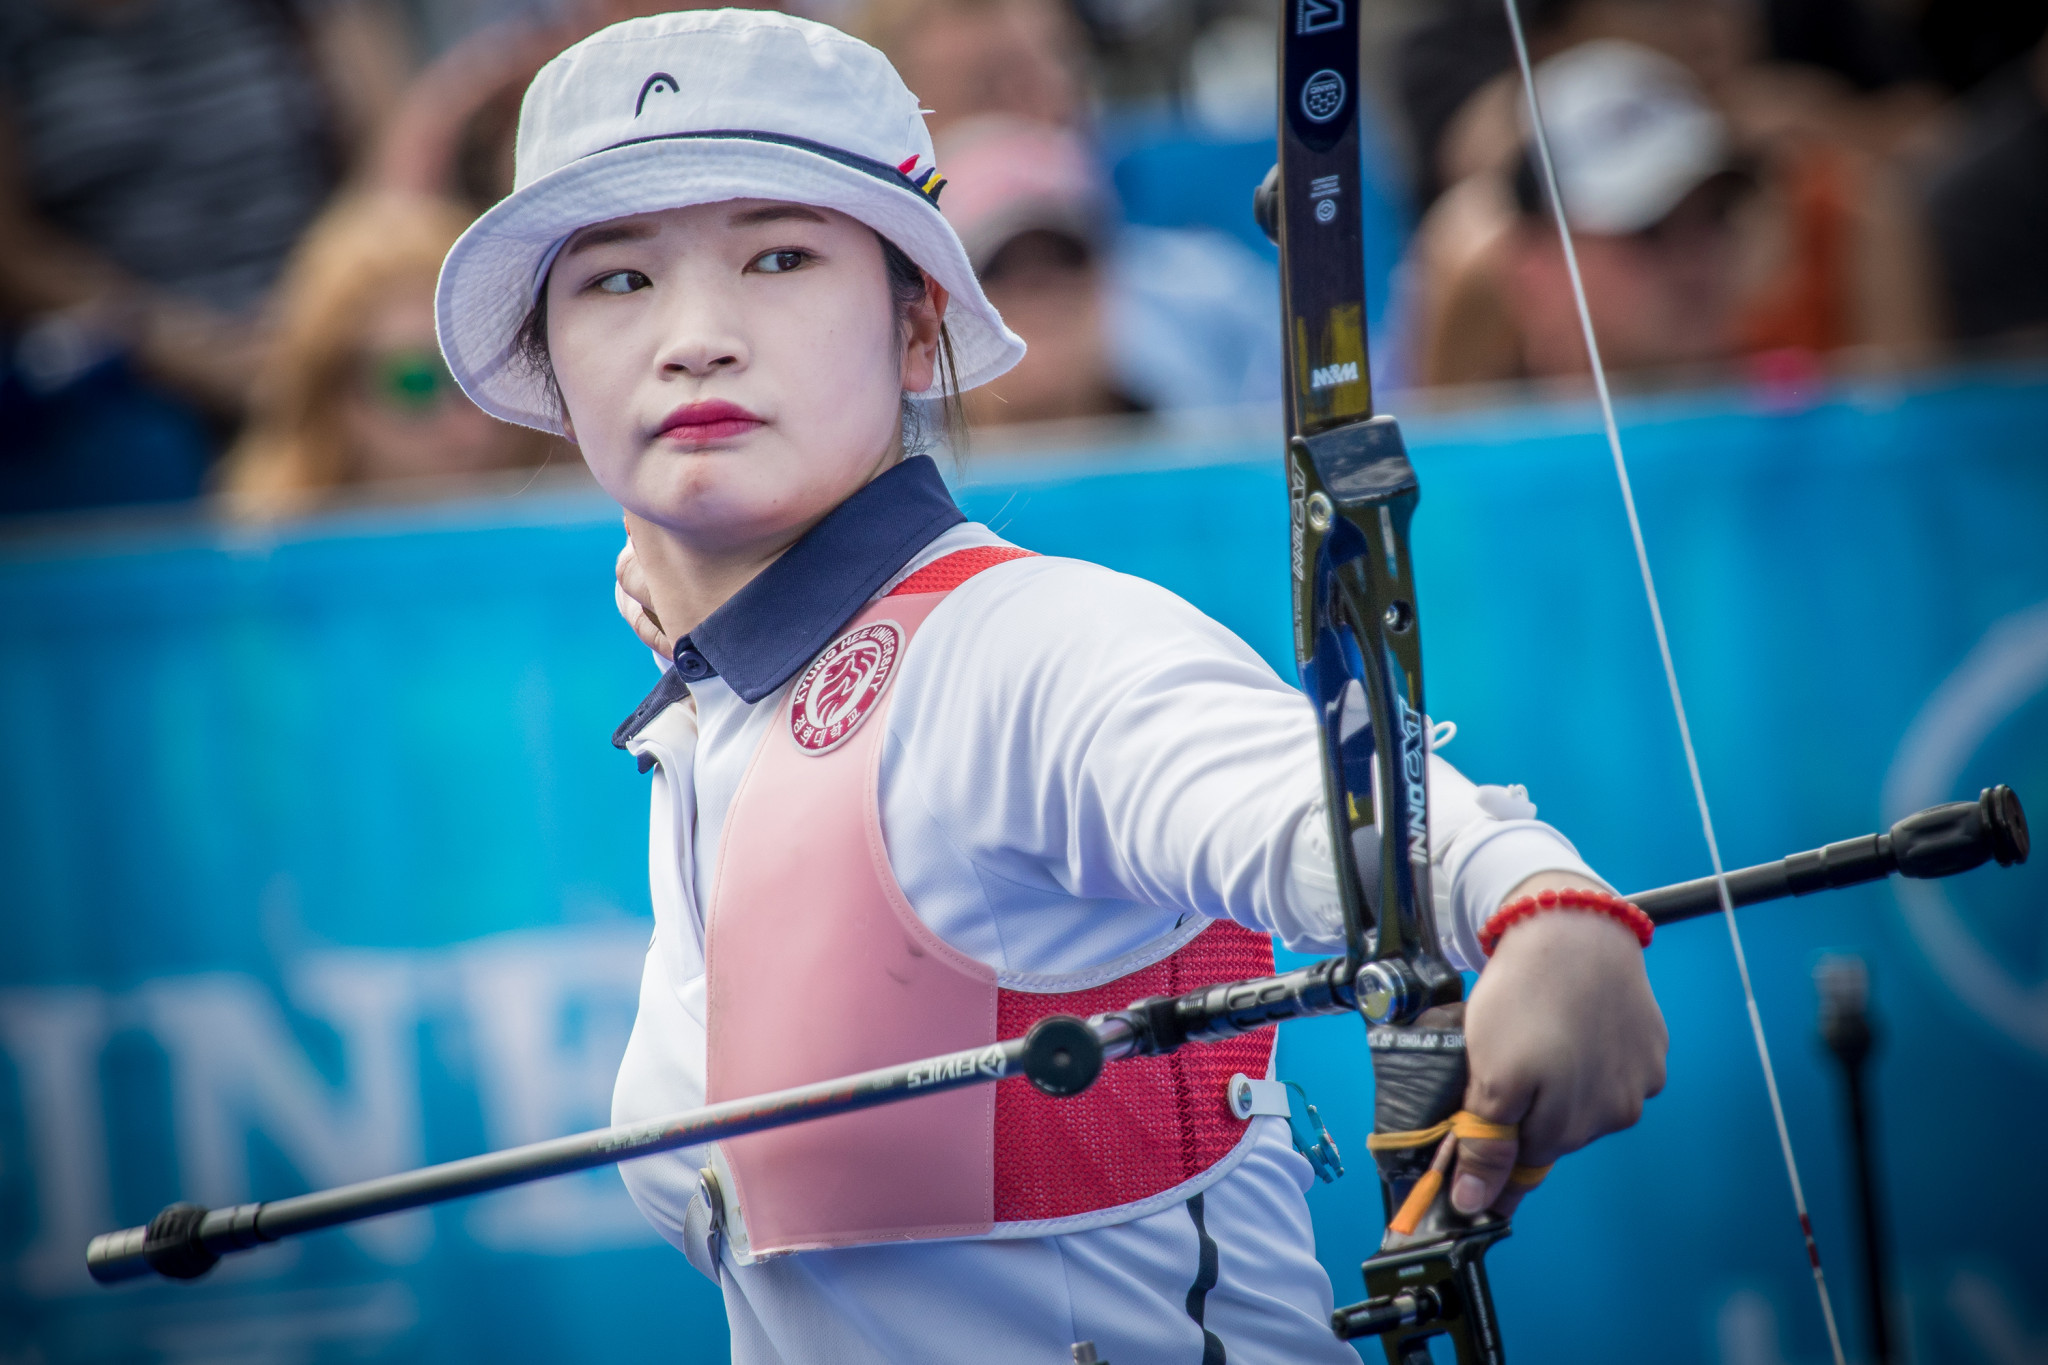 Kang Chae Young beat 14-year-old Casey Kaufhold to win the Indoor Archery World Series event in Nimes ©Getty Images